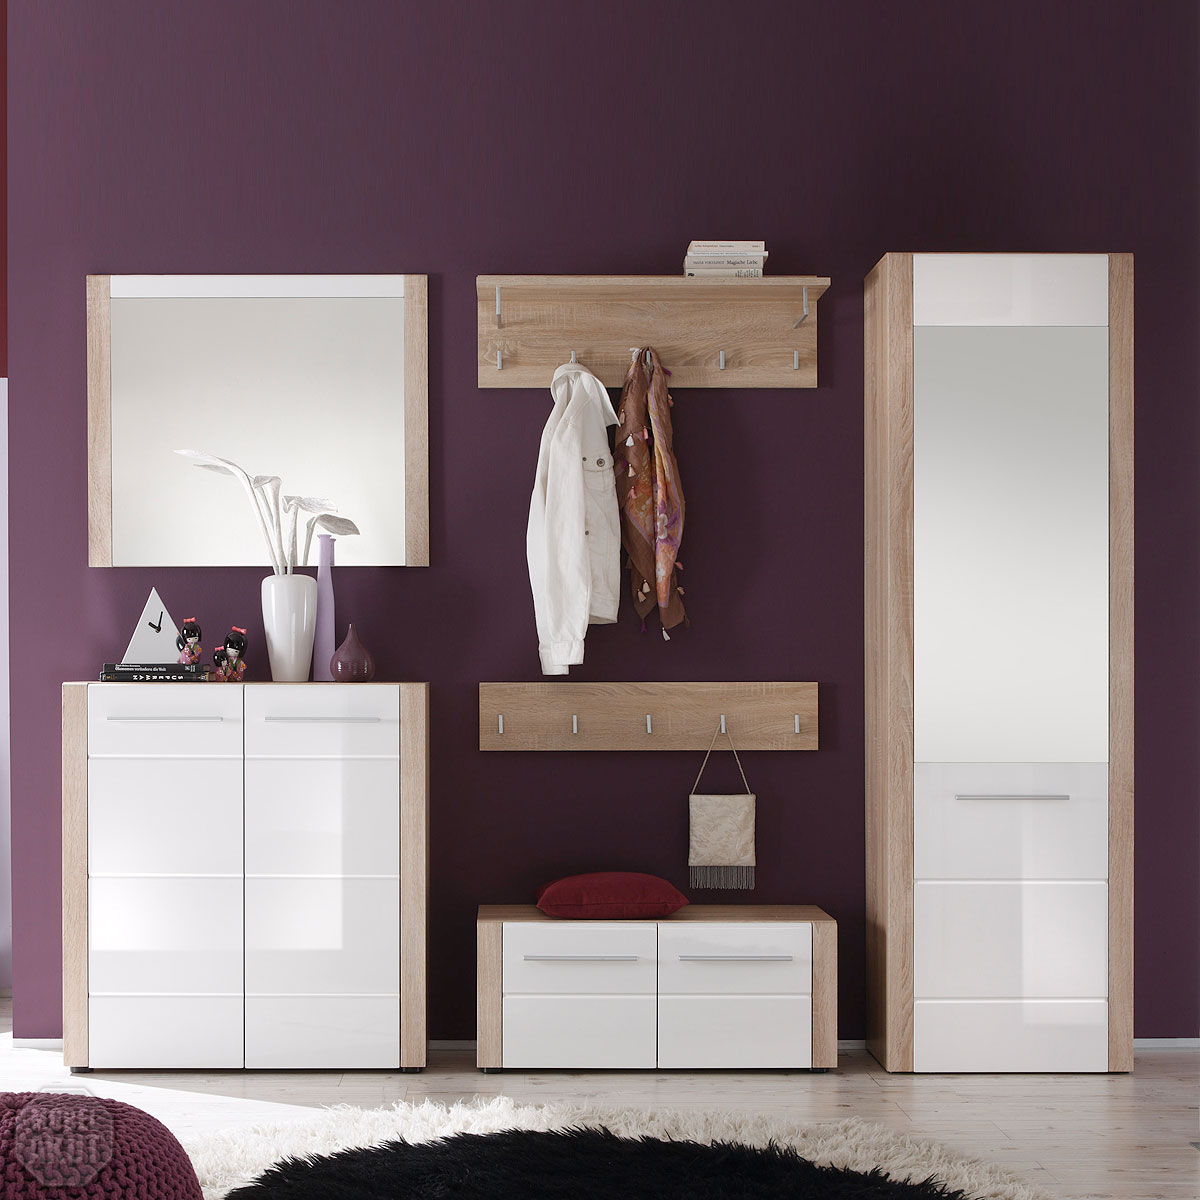 garderobenset i tila garderobe schuhschrank sonoma eiche. Black Bedroom Furniture Sets. Home Design Ideas